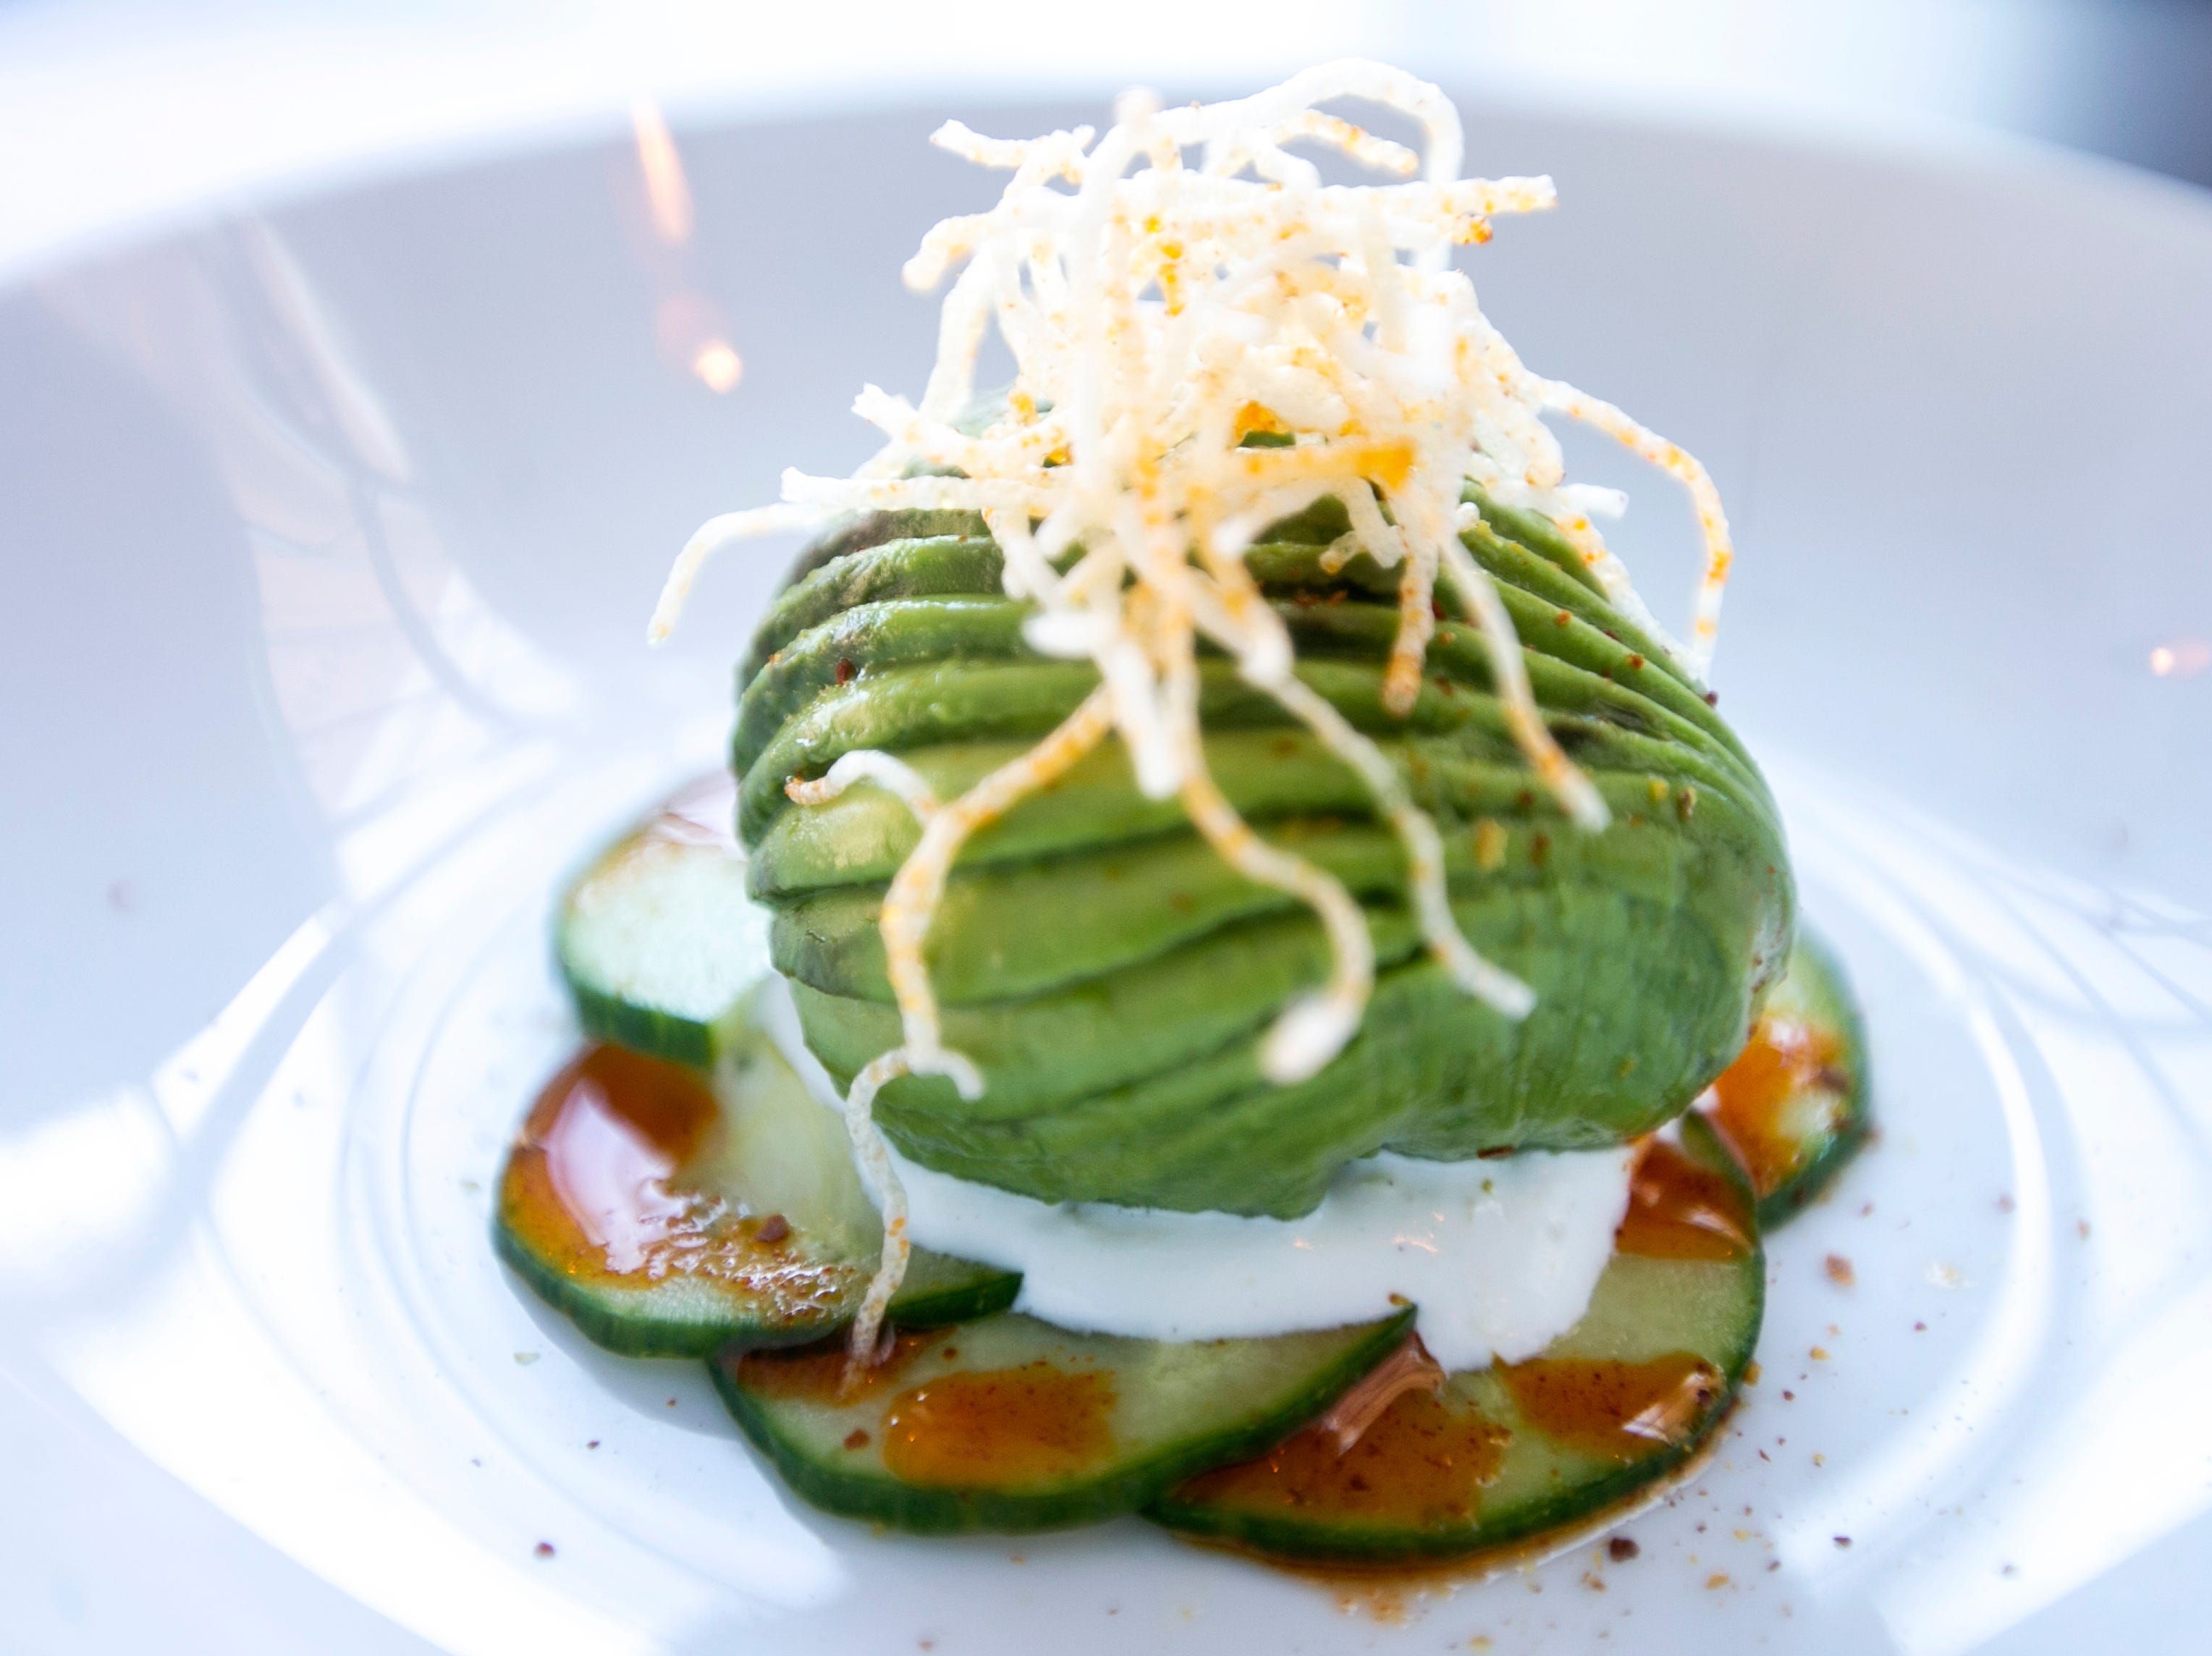 Avocado ravioli is seen on Wednesday, Jan. 23, 2019, at Linn Street Dive in Iowa City, Iowa. The small plate starter is served with salmon gravlax, marinated cucumber, dill creme fraiche and chili oil.